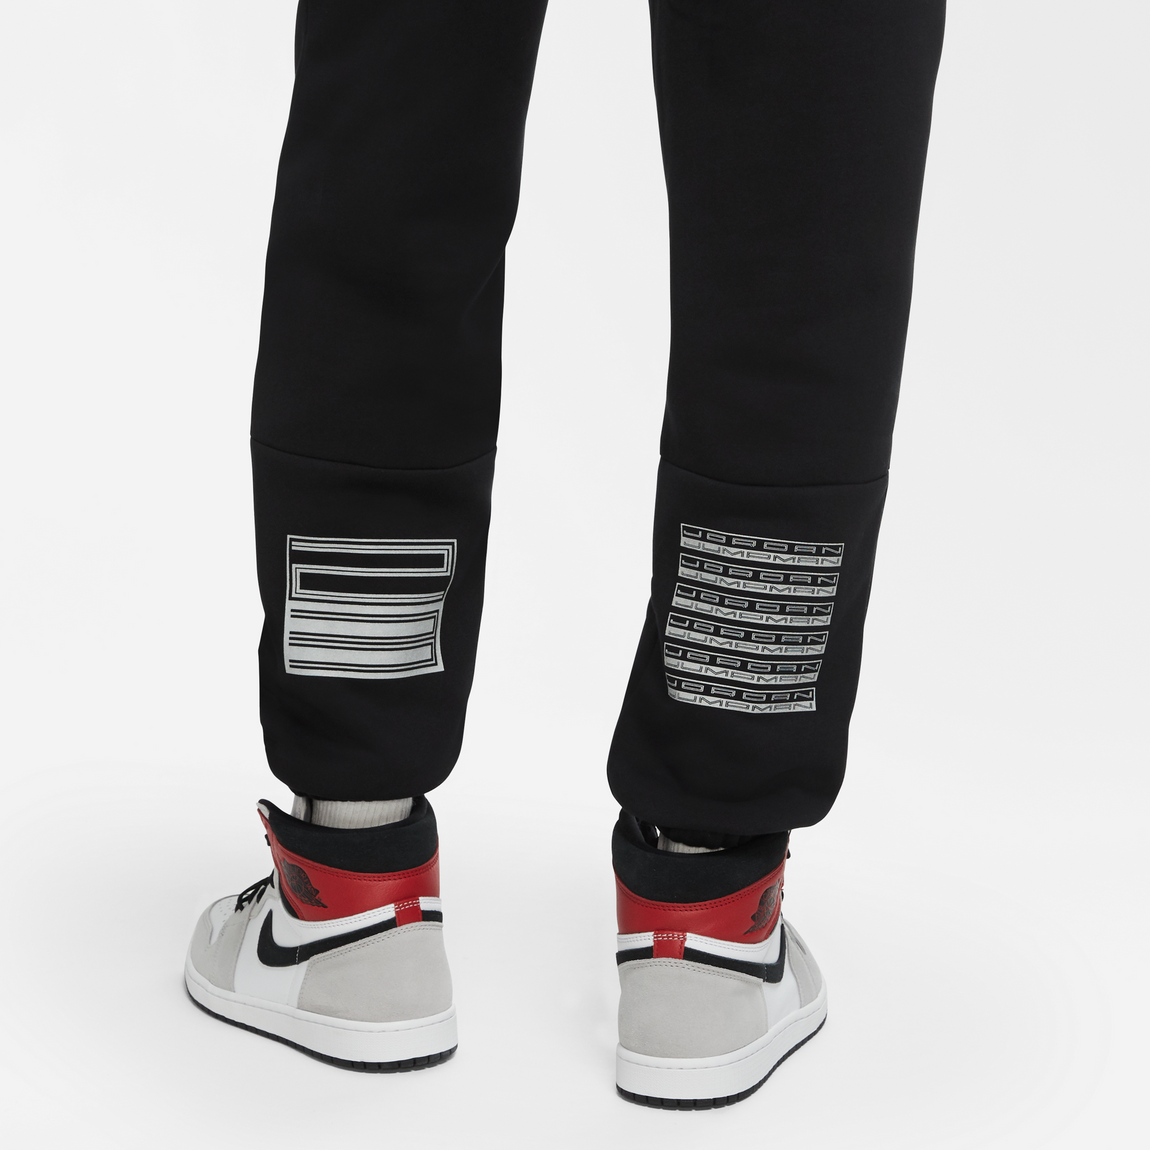 Air Jordan AJ 11 Pants (Black/Reflective Silver) - Air Jordan AJ 11 Pants (Black/Reflective Silver) -